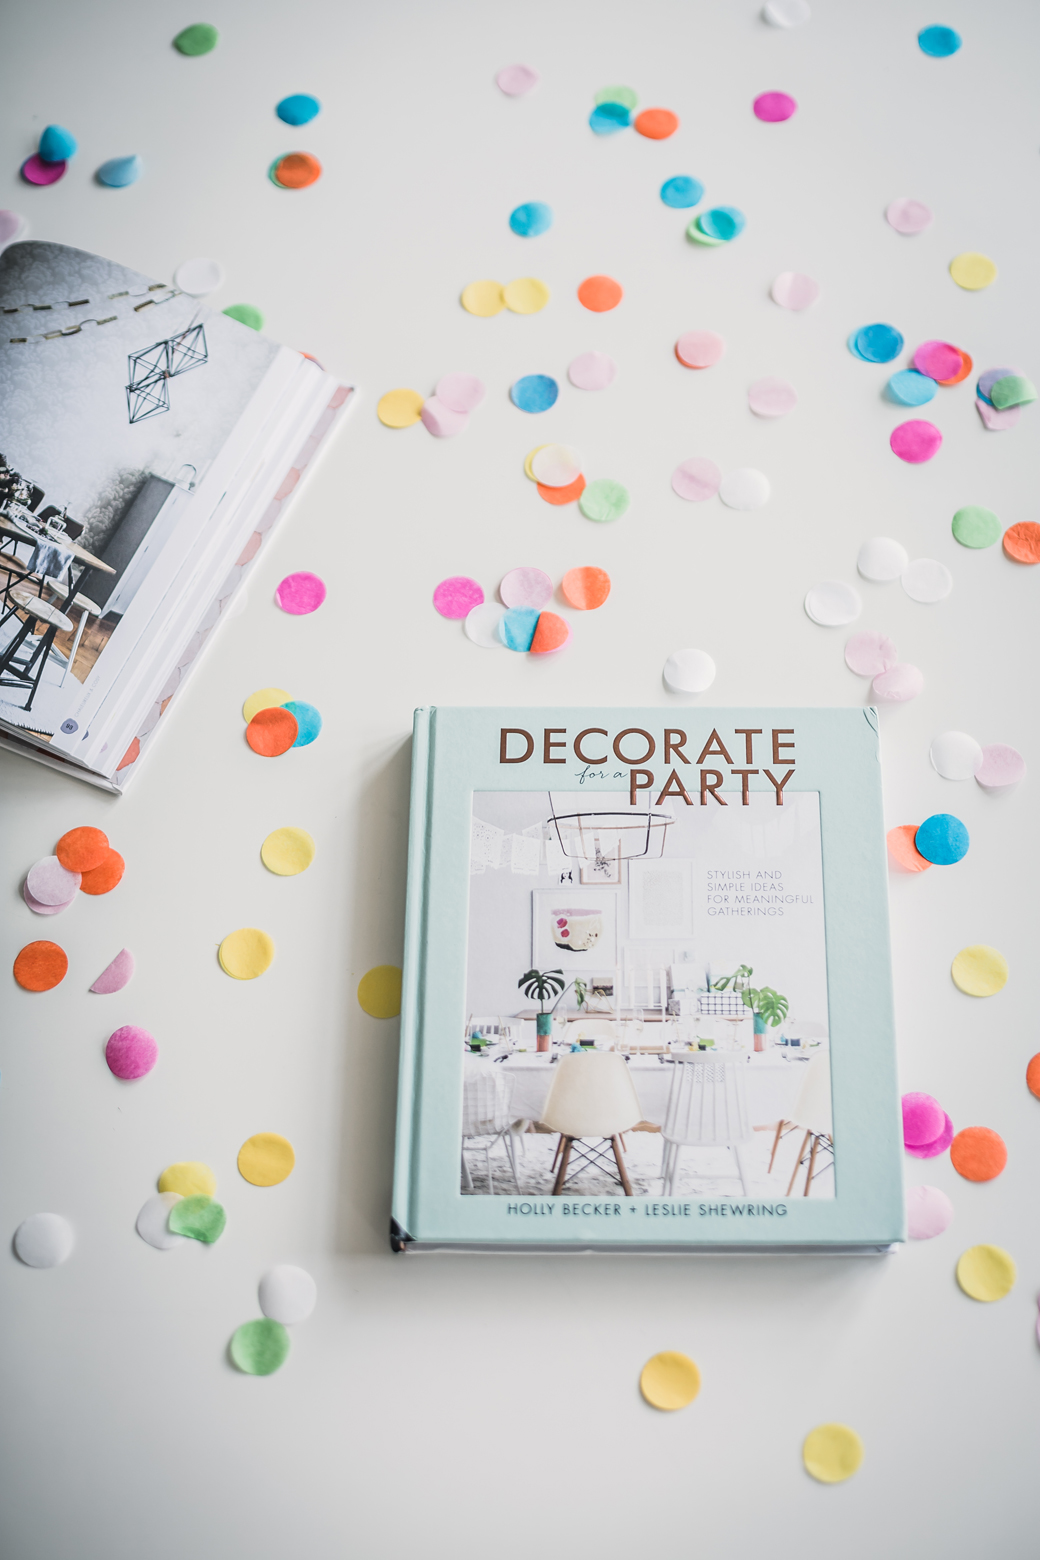 decorateforaparty_giveaway